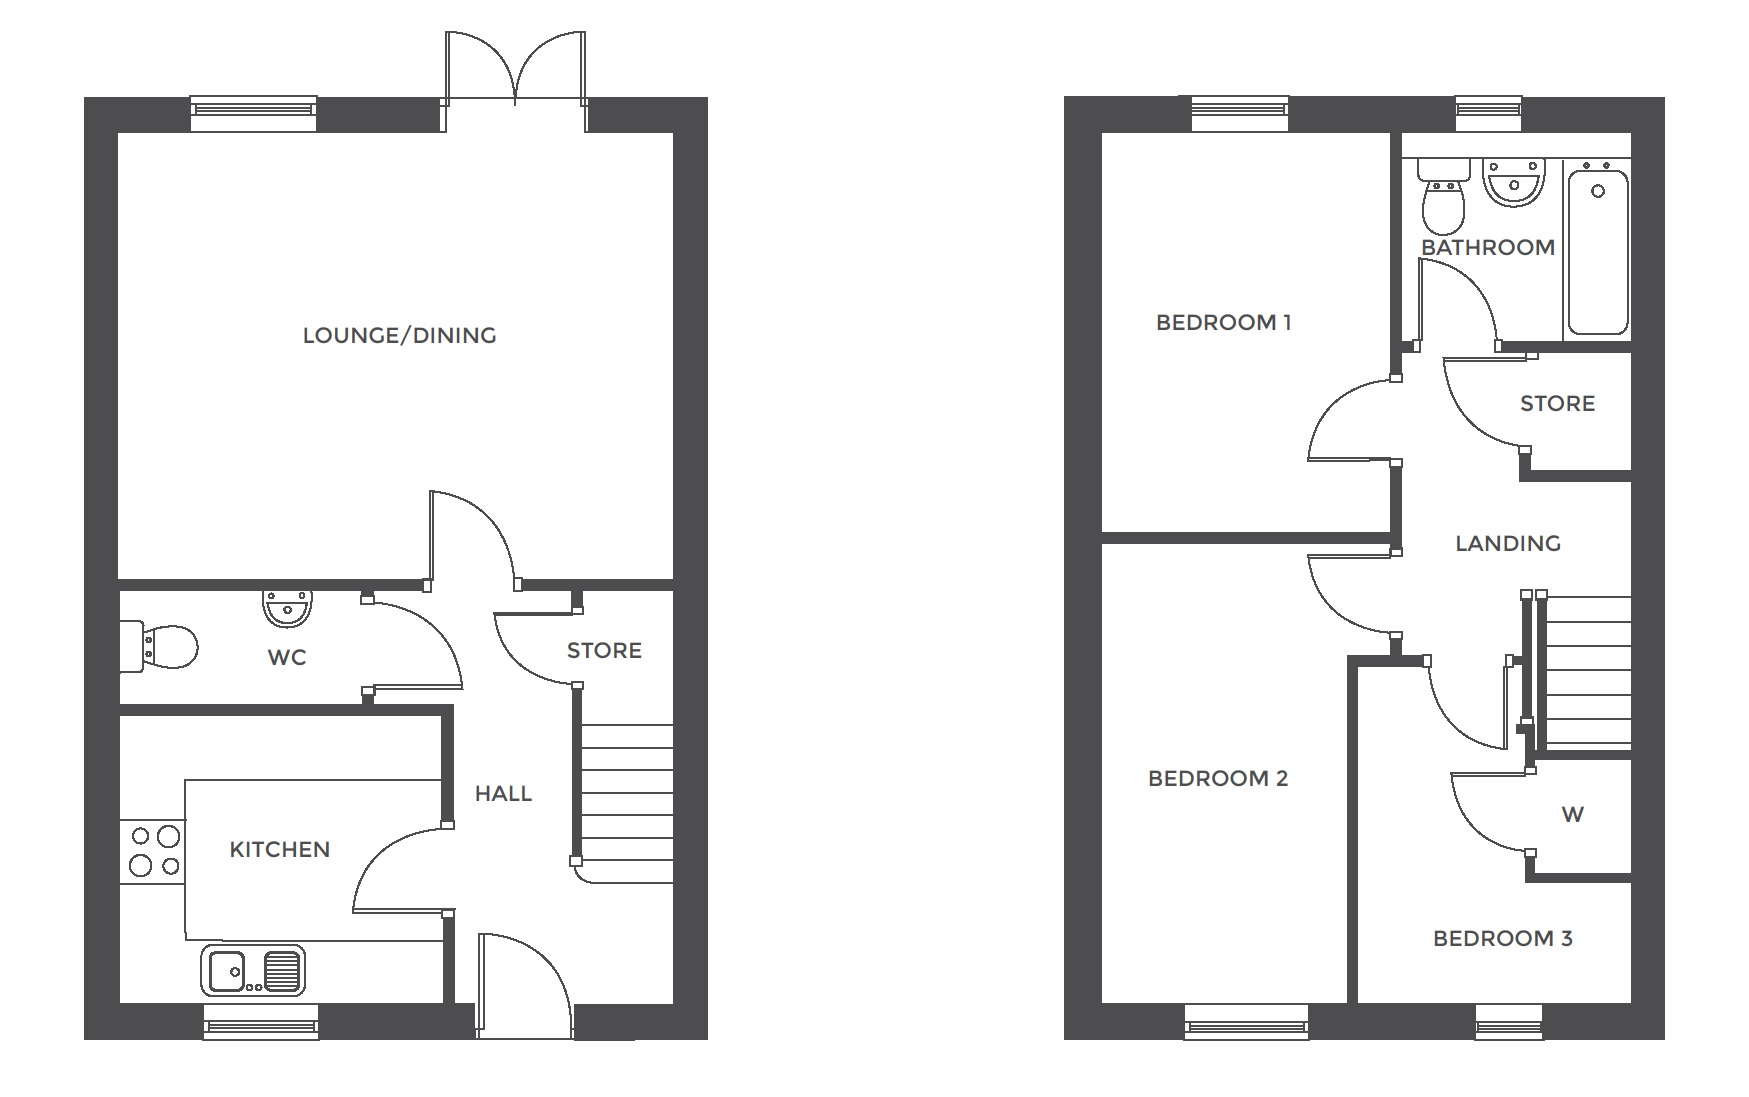 Repington Walk, Plot 21 floor plan